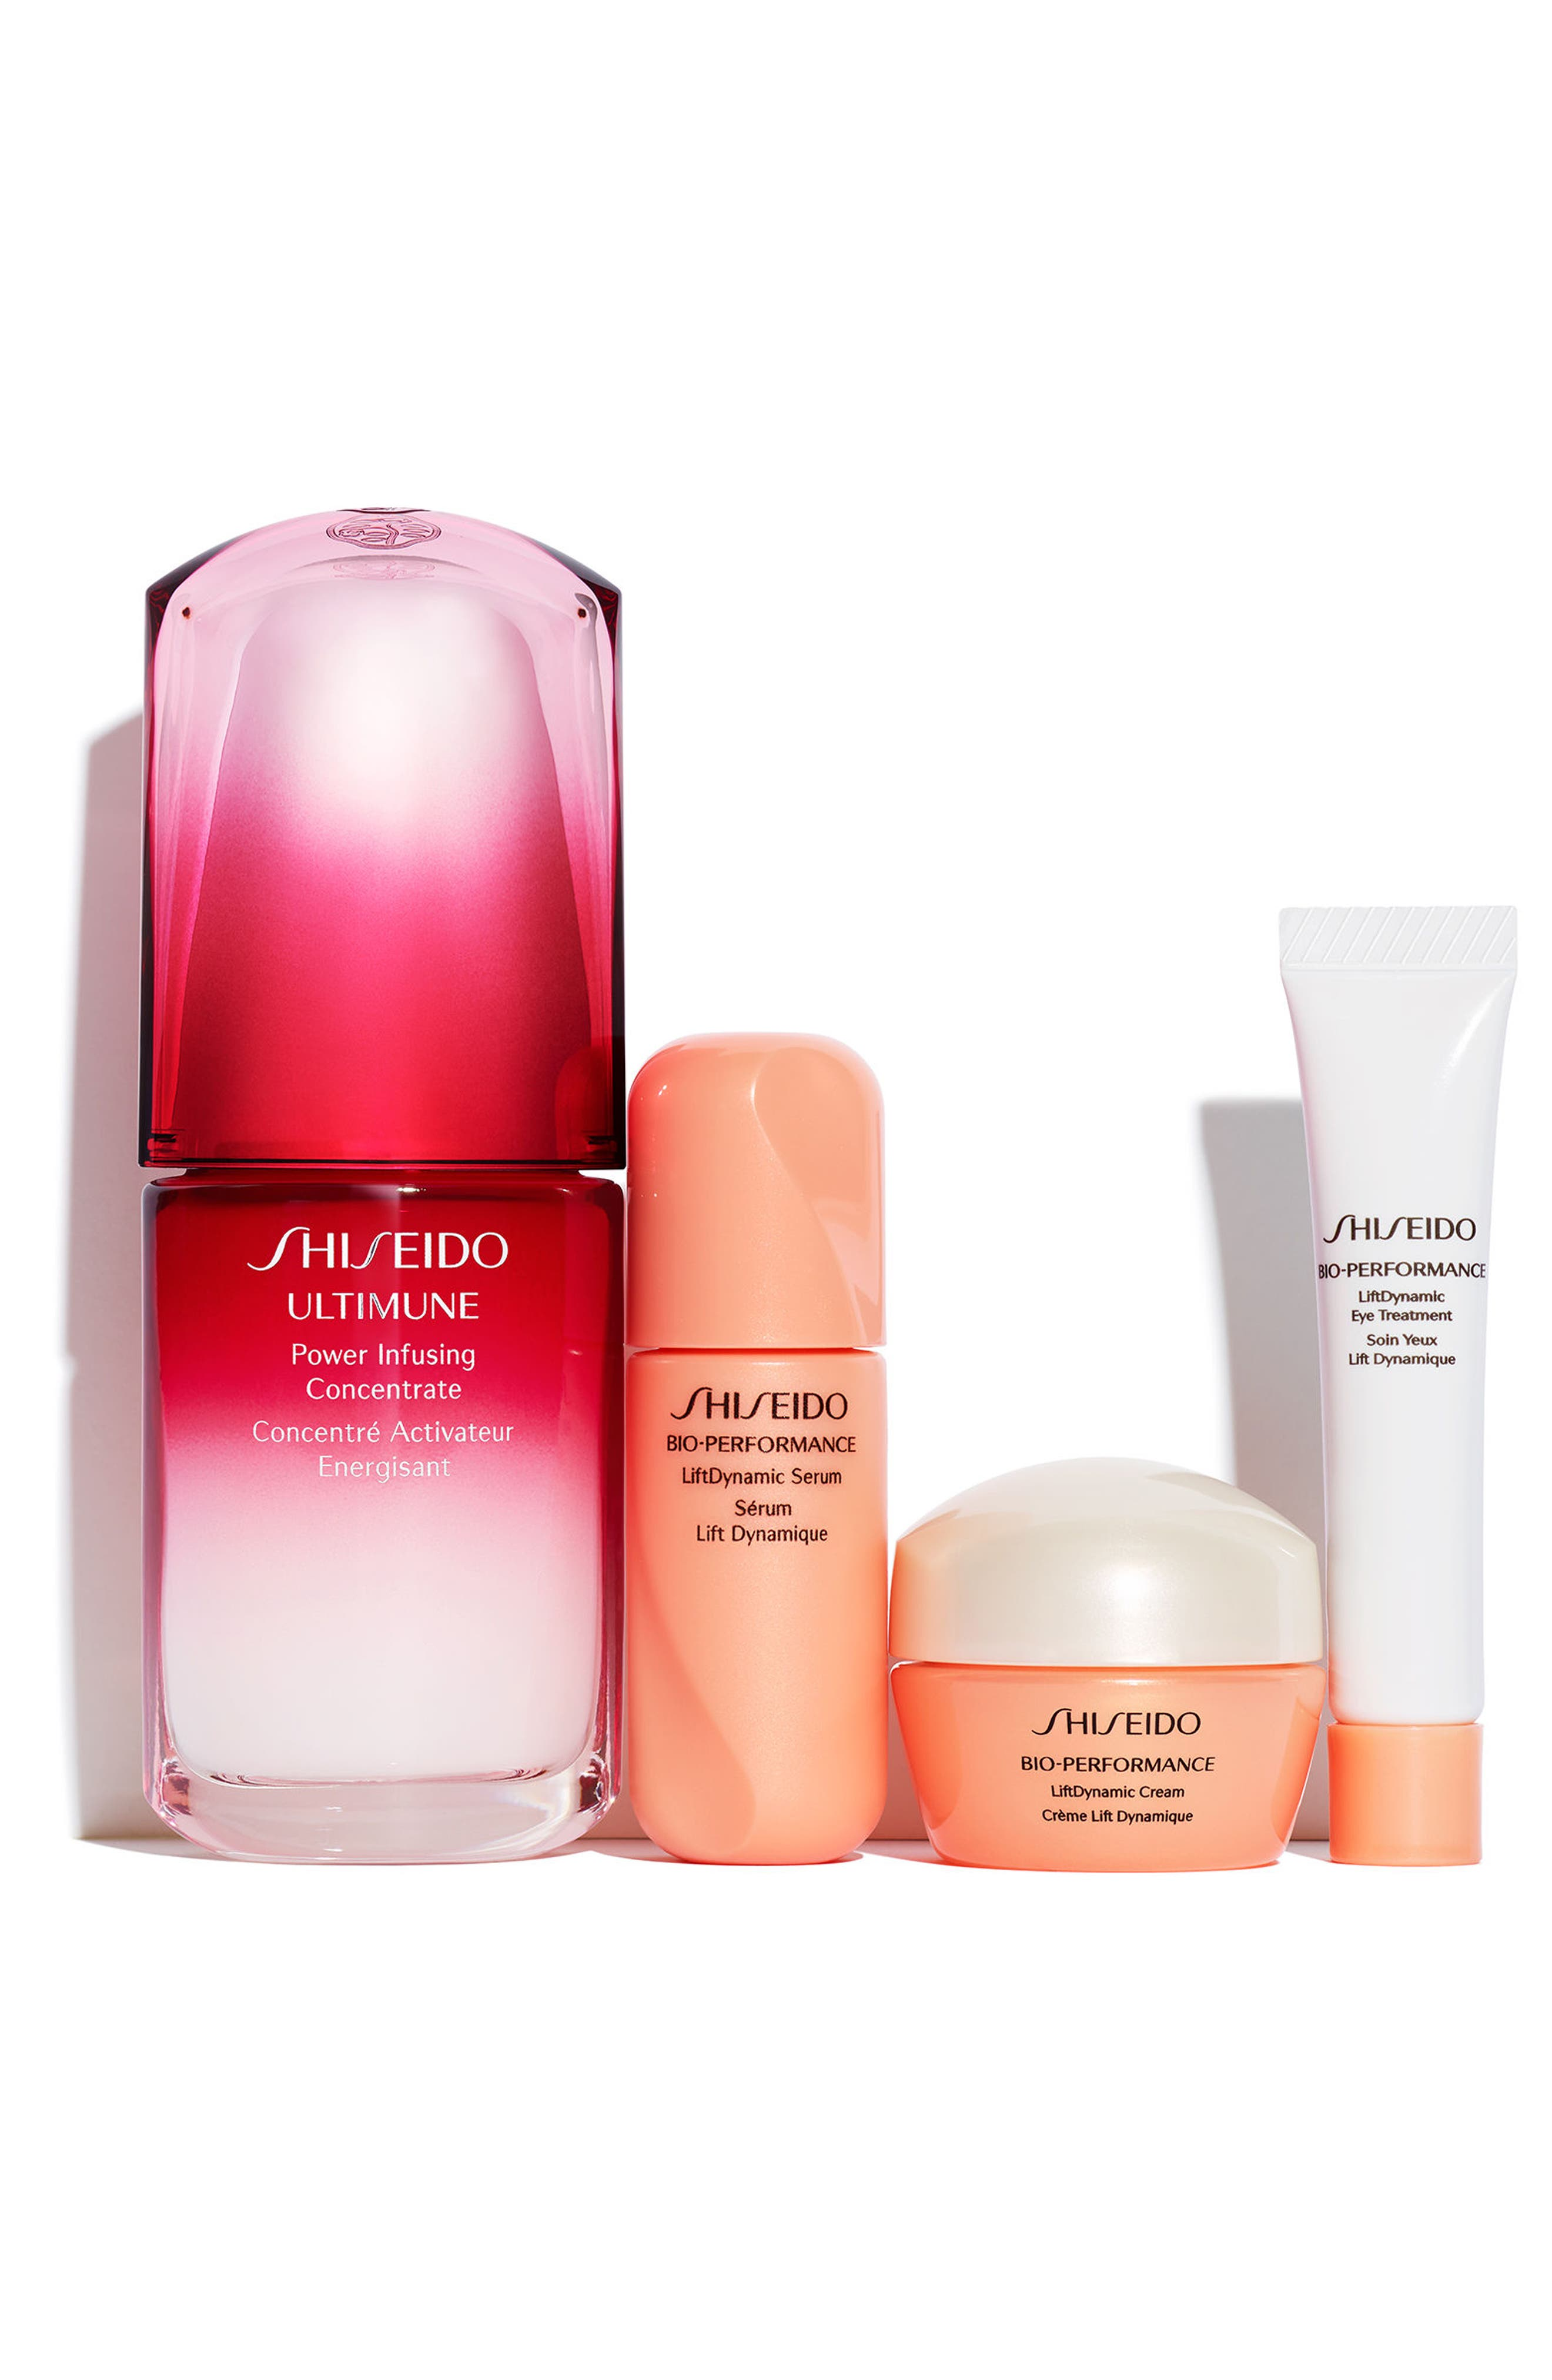 Shiseido The Ultimate Lifting Routine Set ($135 Value)